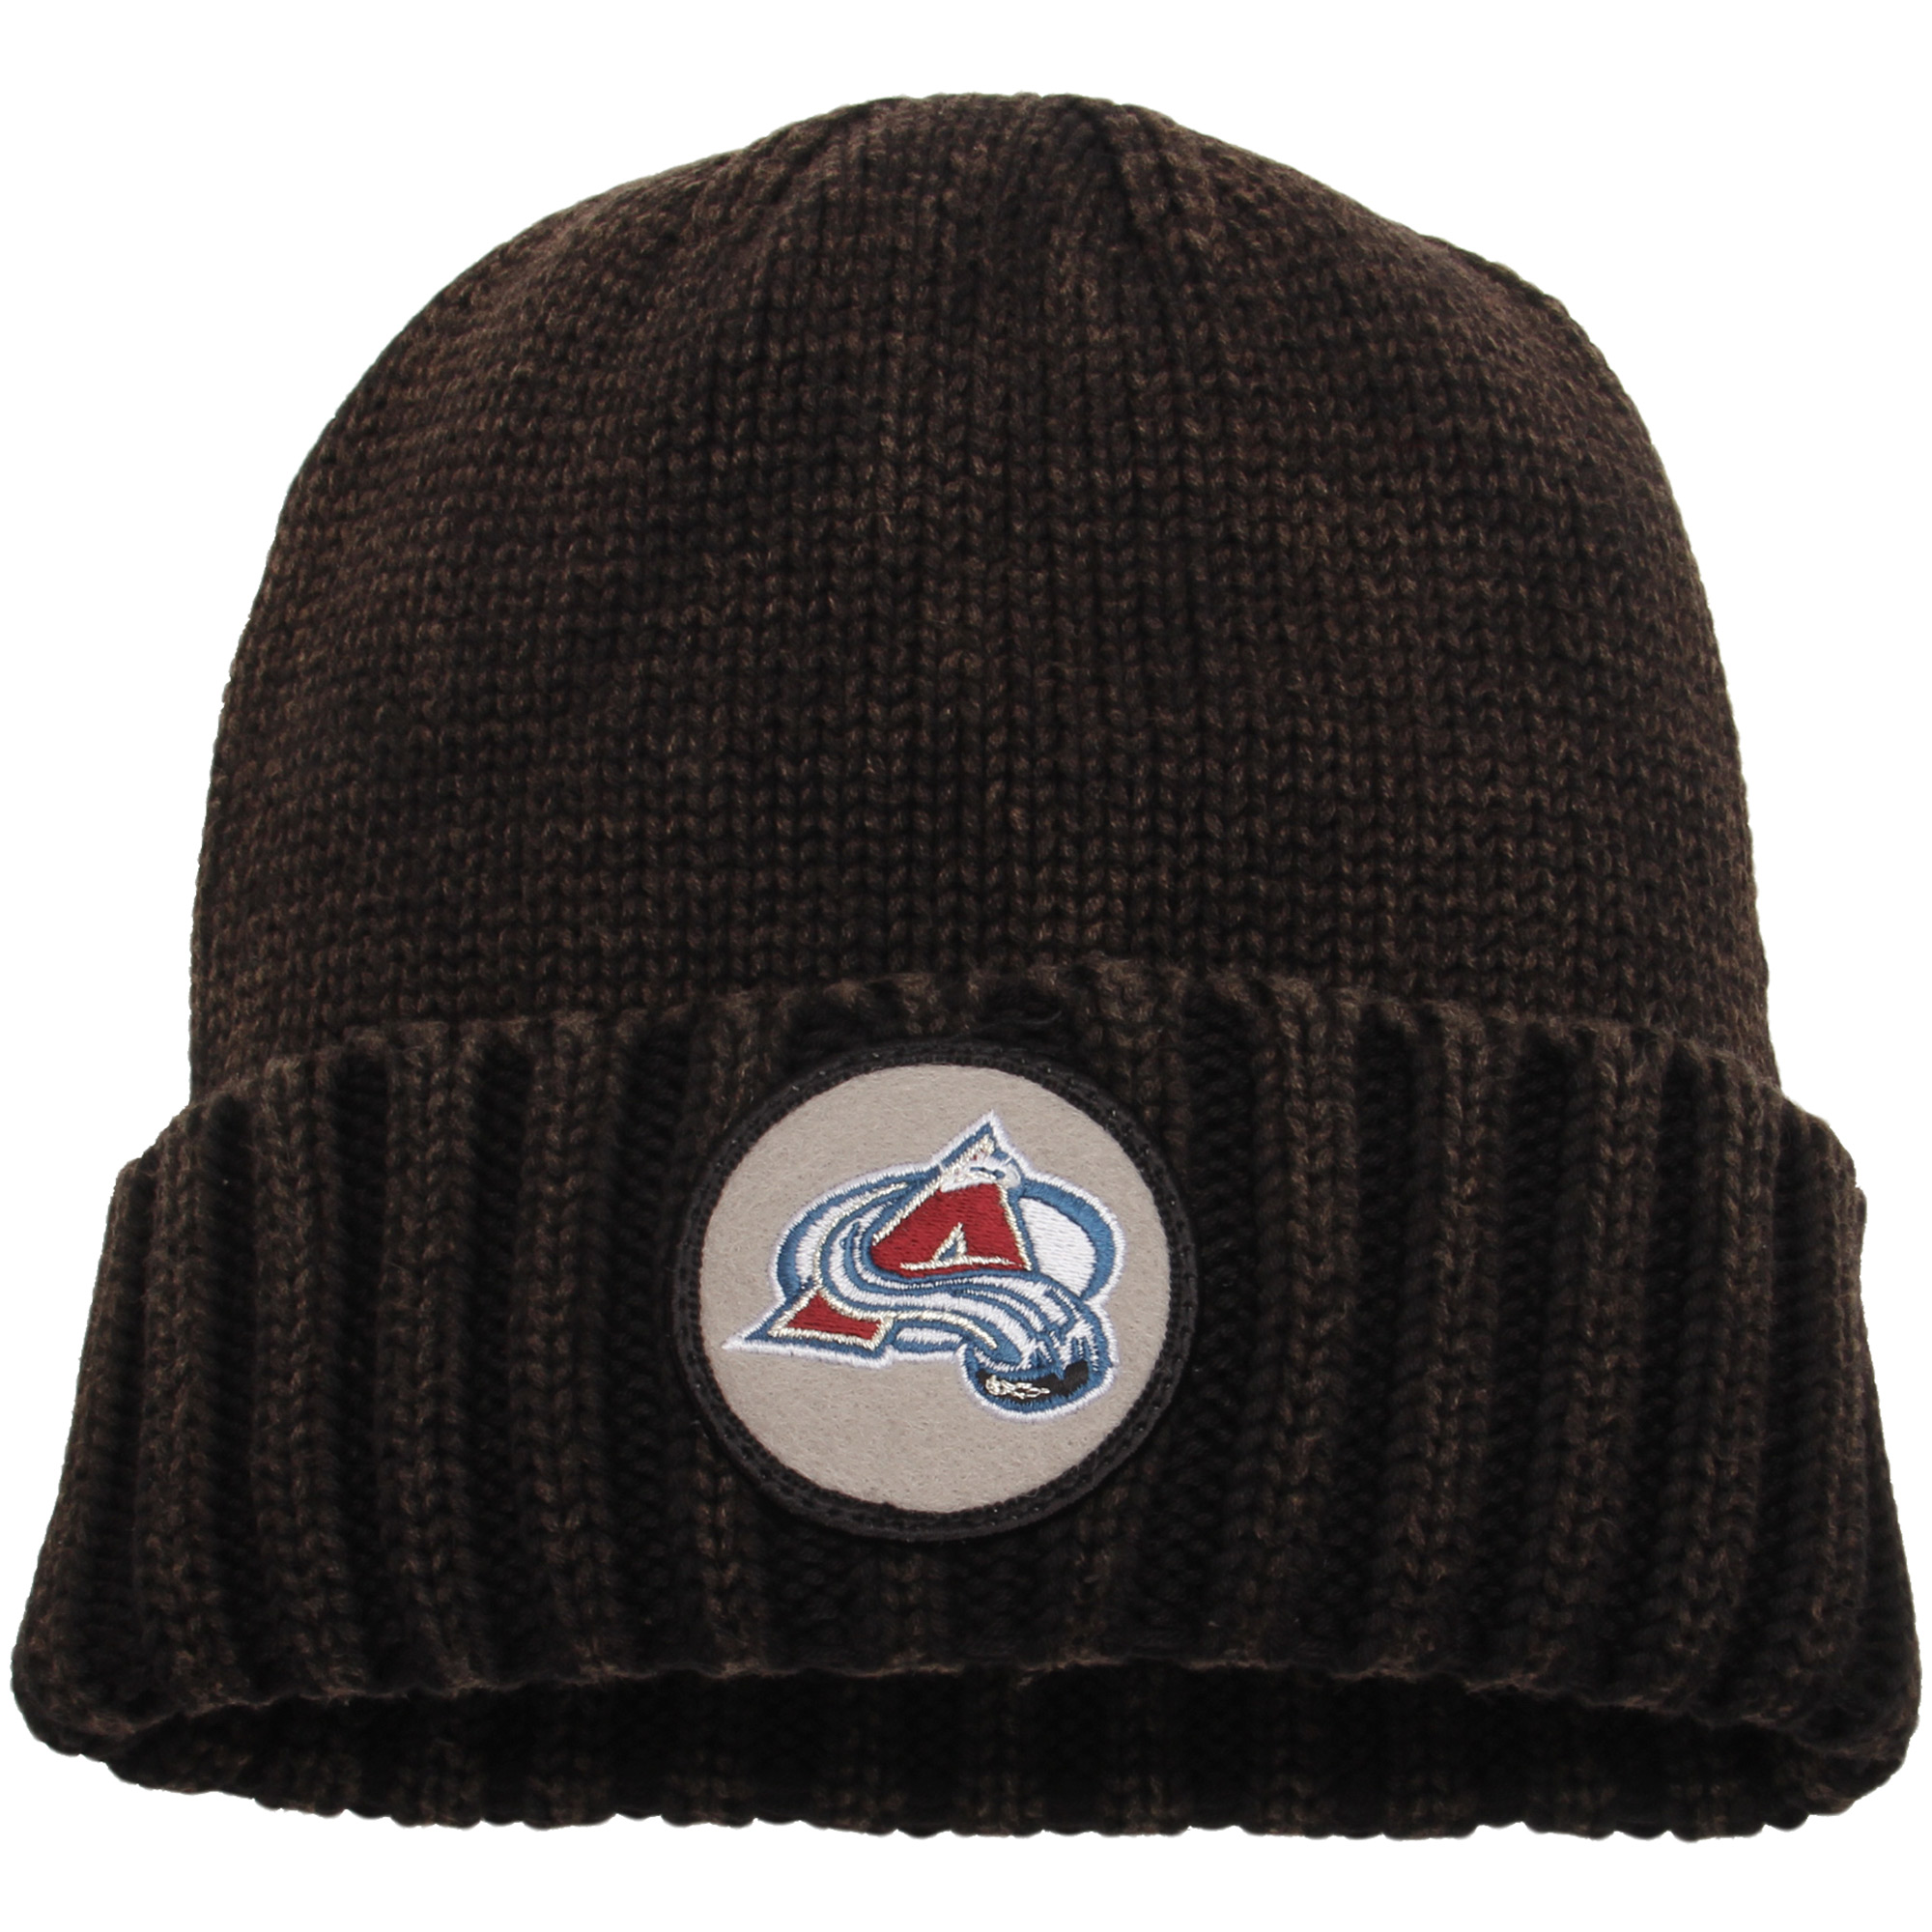 Colorado Avalanche Mitchell & Ness Current Logo Ribbed Cuffed Knit Hat - Brown - OSFA